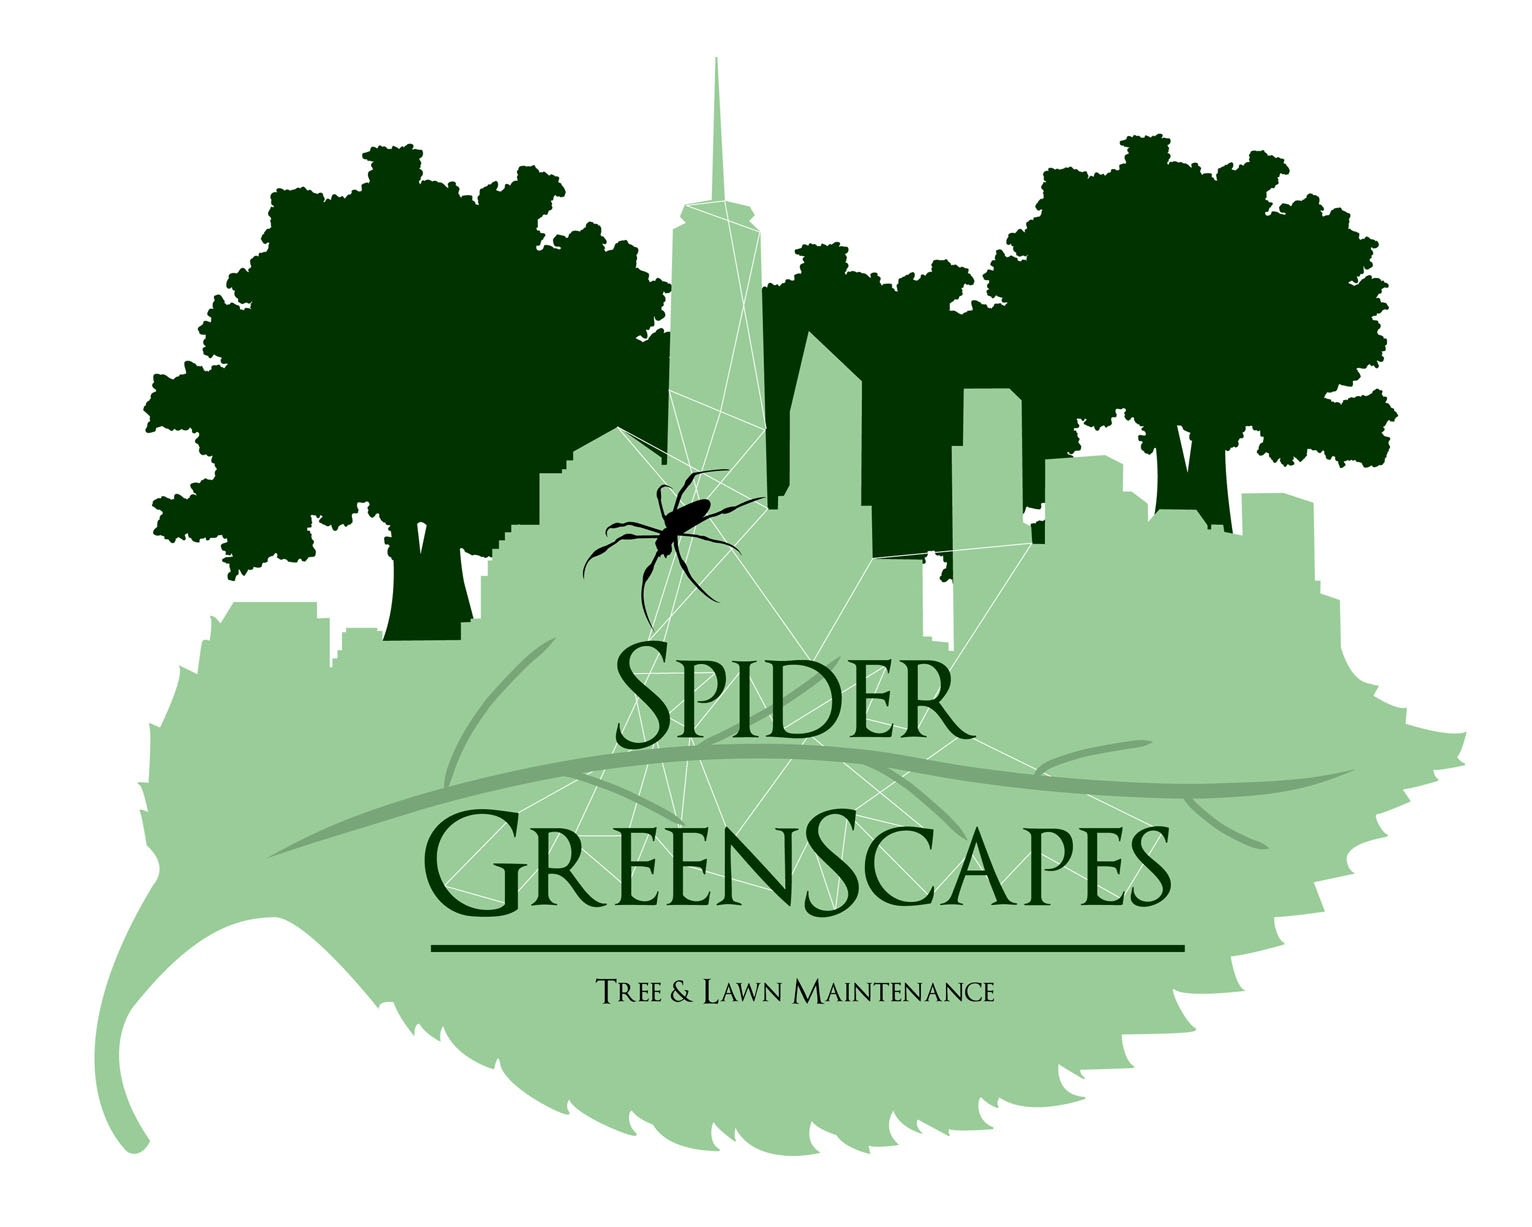 Logo Design for Spider GreenScapes